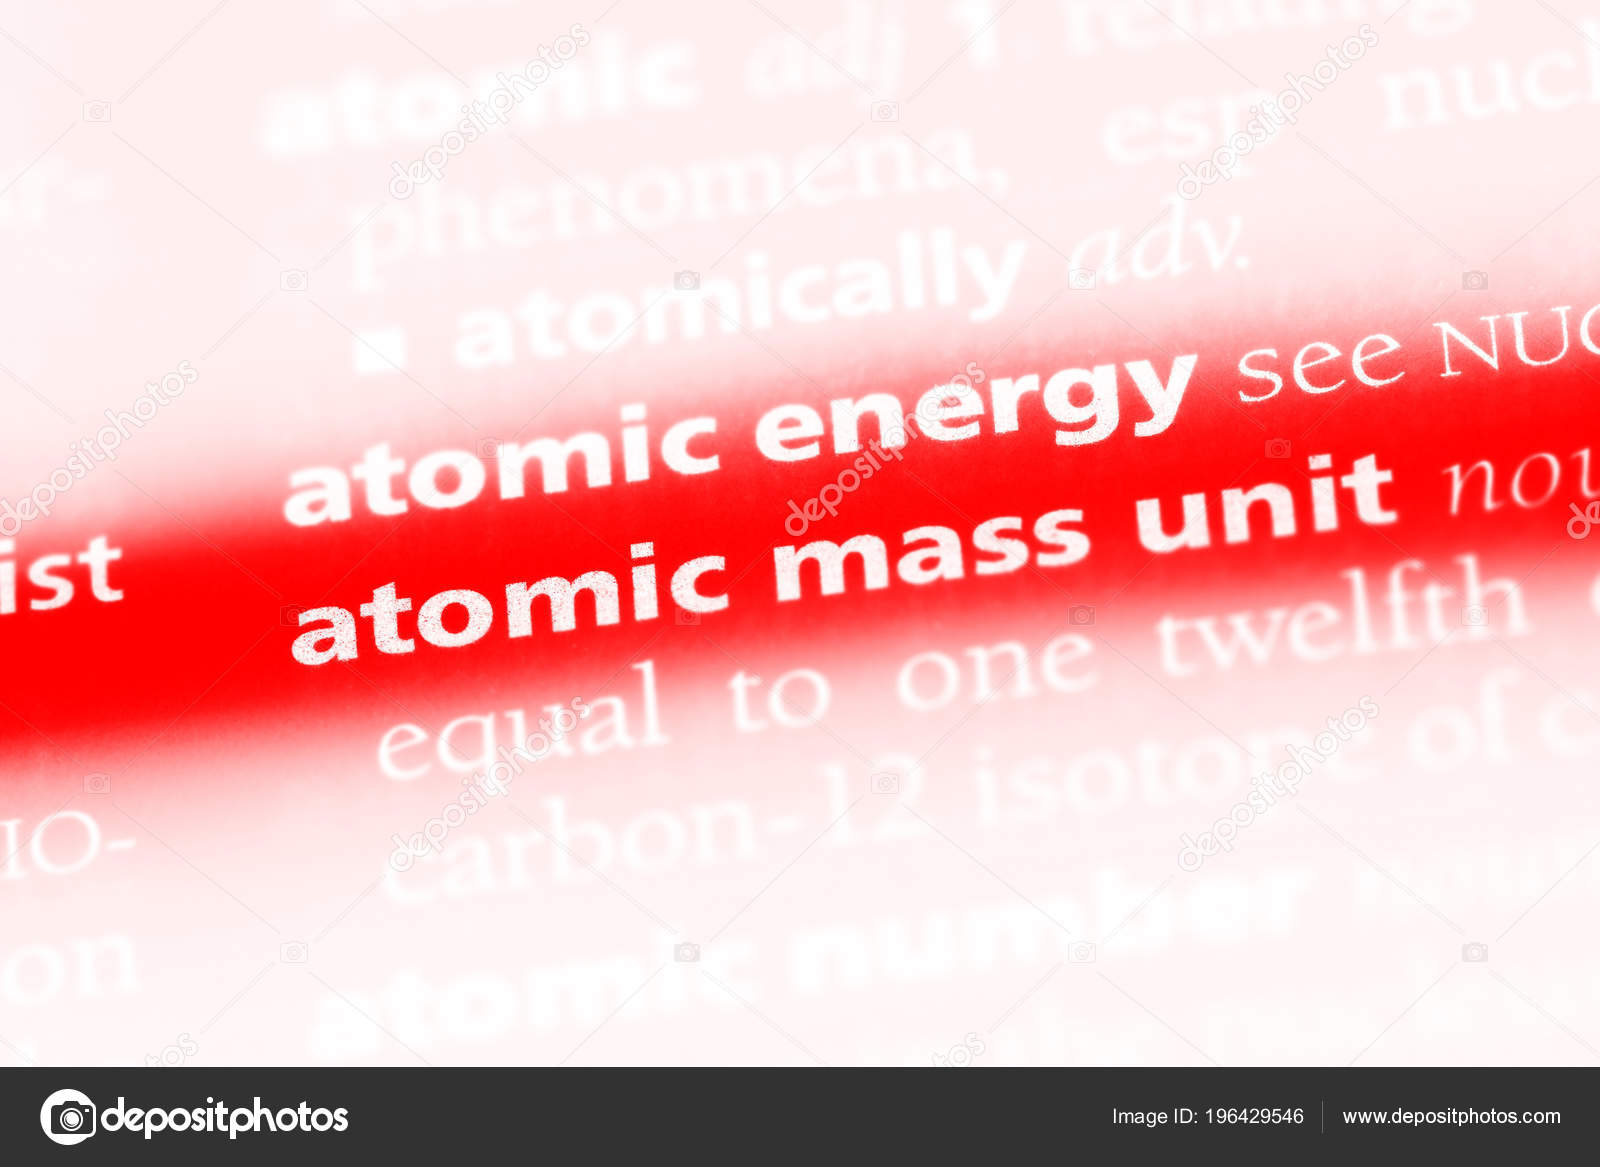 Atomic Mass Unit Word Dictionary Atomic Mass Unit Concept